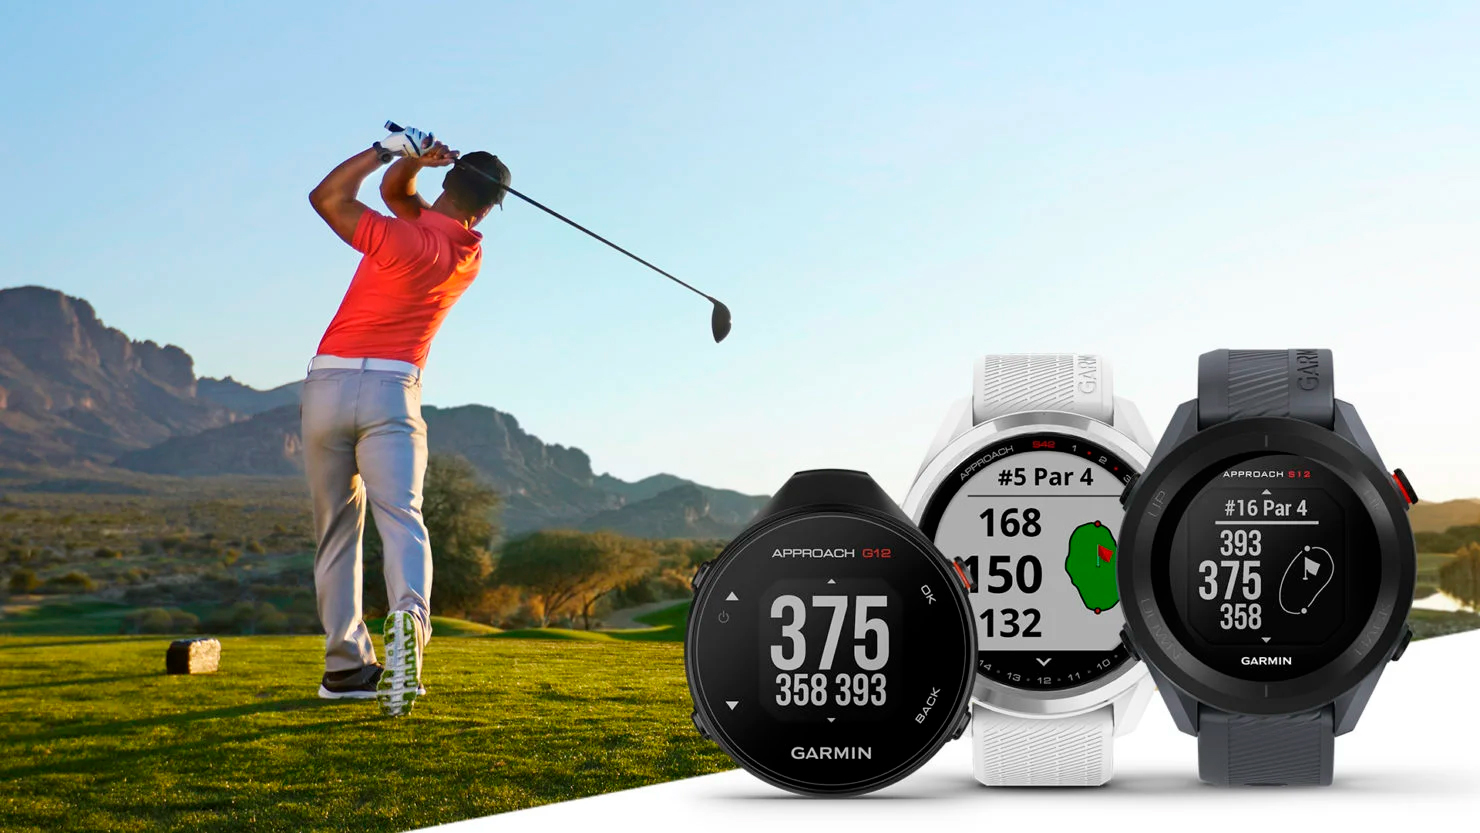 Garmin expands its Approach® with a new lineup of GPS devices to help golfers improve their game